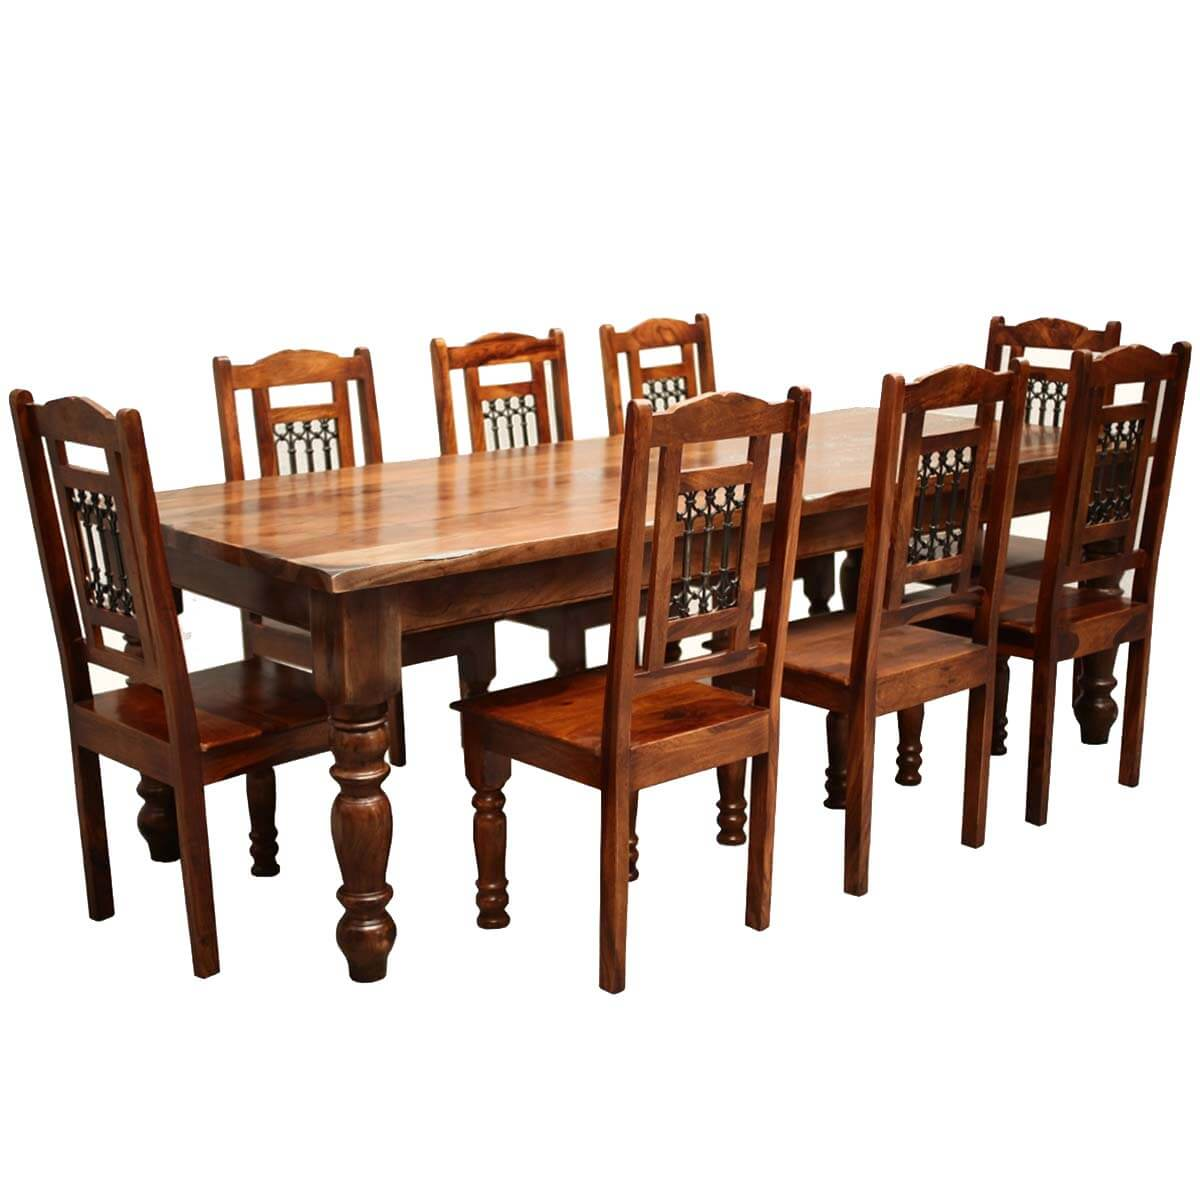 Rustic Furniture Solid Wood Large Dining Table amp 8 Chair Set : 4388 from sierralivingconcepts.com size 1200 x 1200 jpeg 116kB